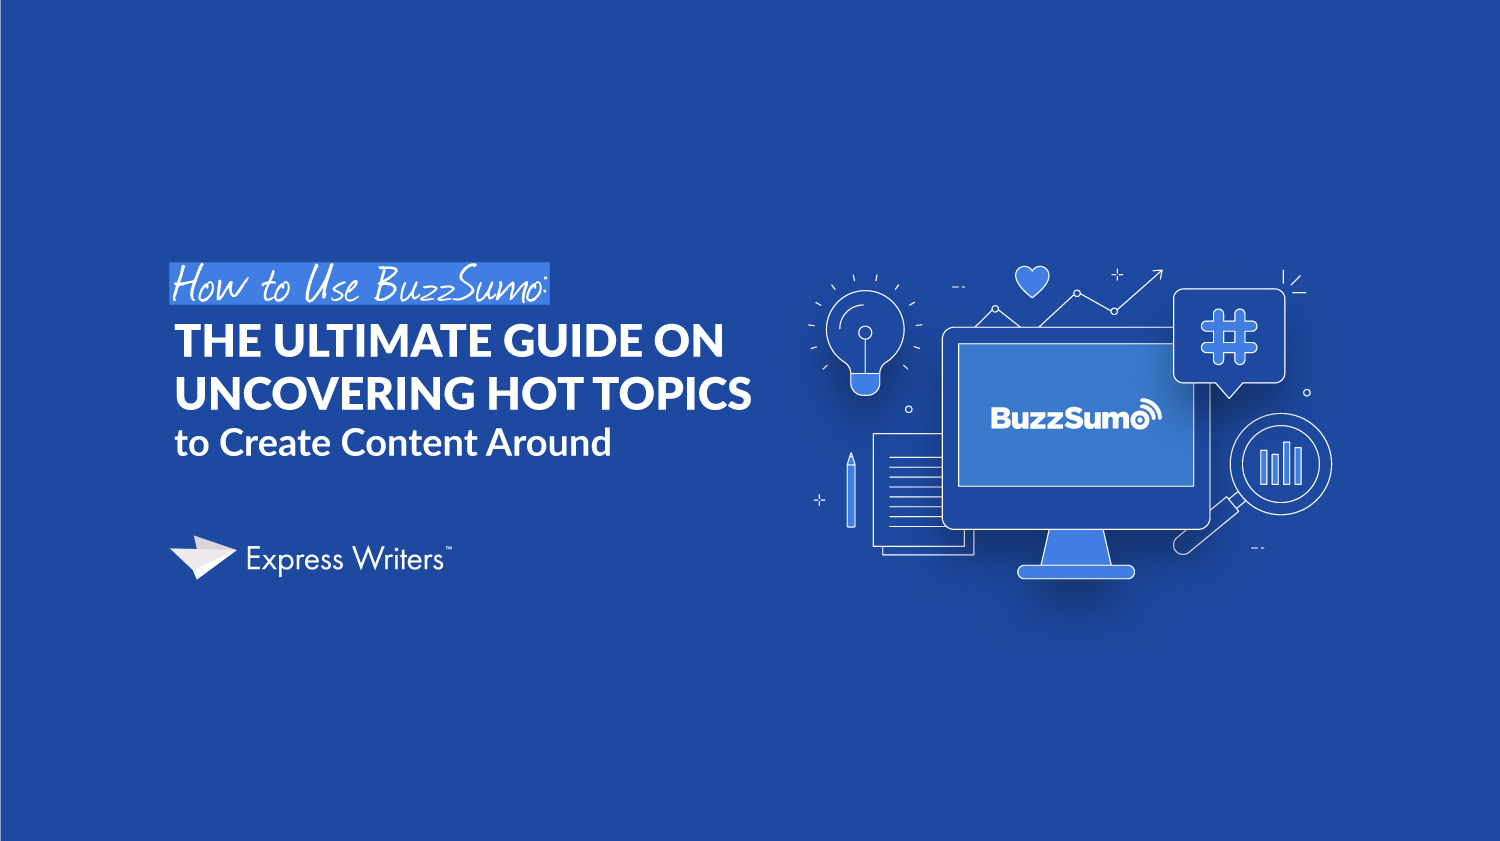 How to use BuzzSumo to uncover hot topics